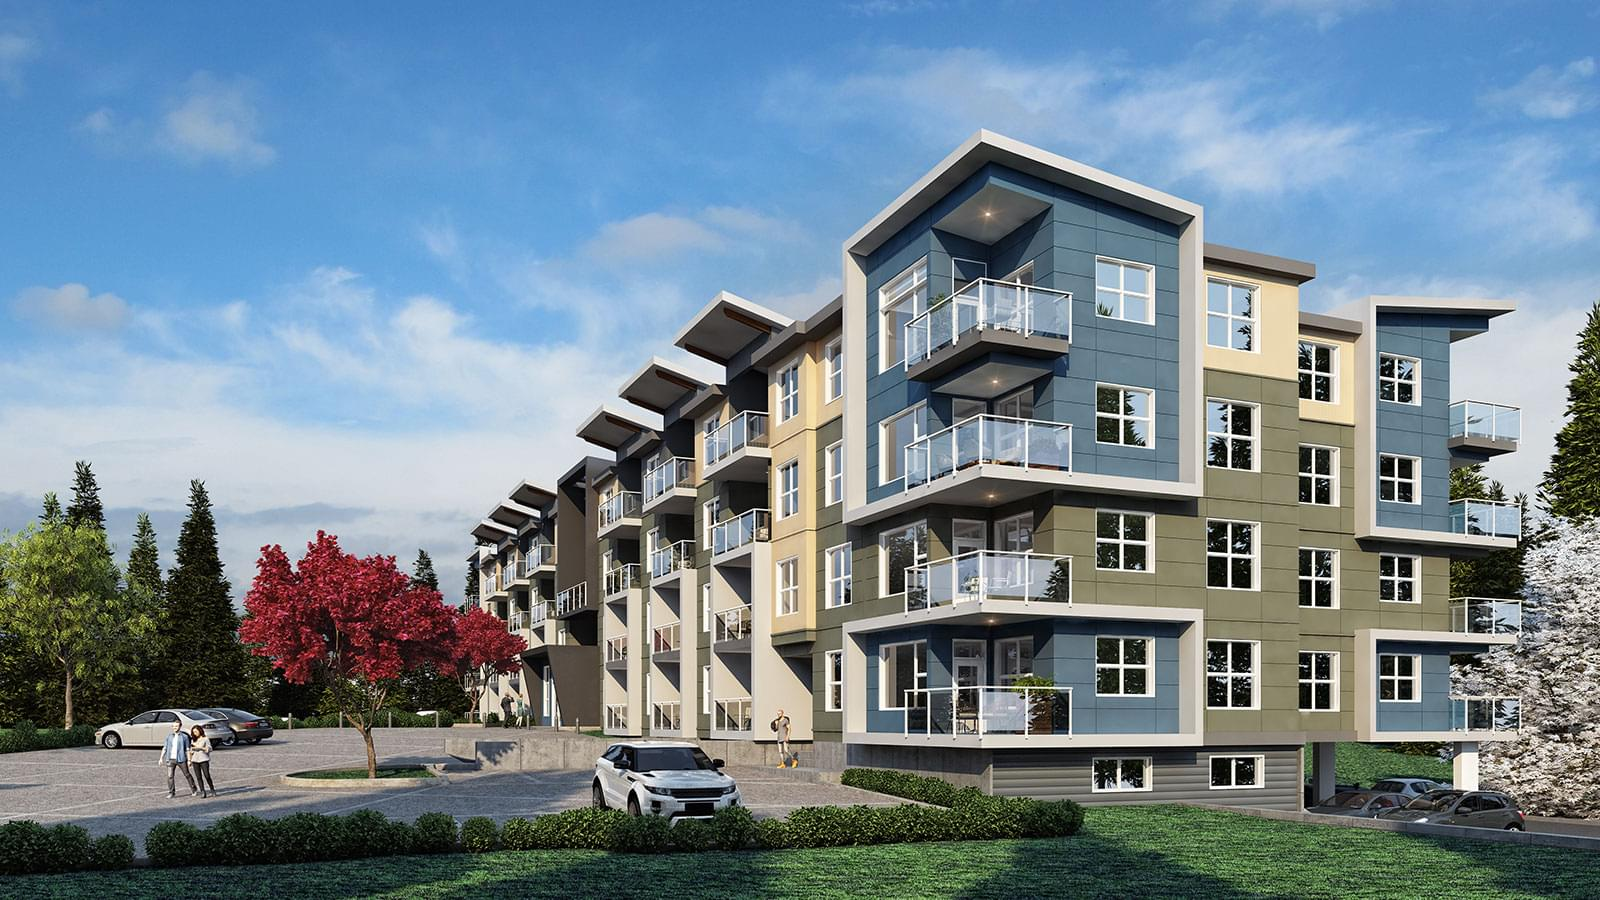 Hub at Pacific Station features 60 Stylish one and two bedroom apartments. All include dens, spacious balconies, and plenty of natural light.